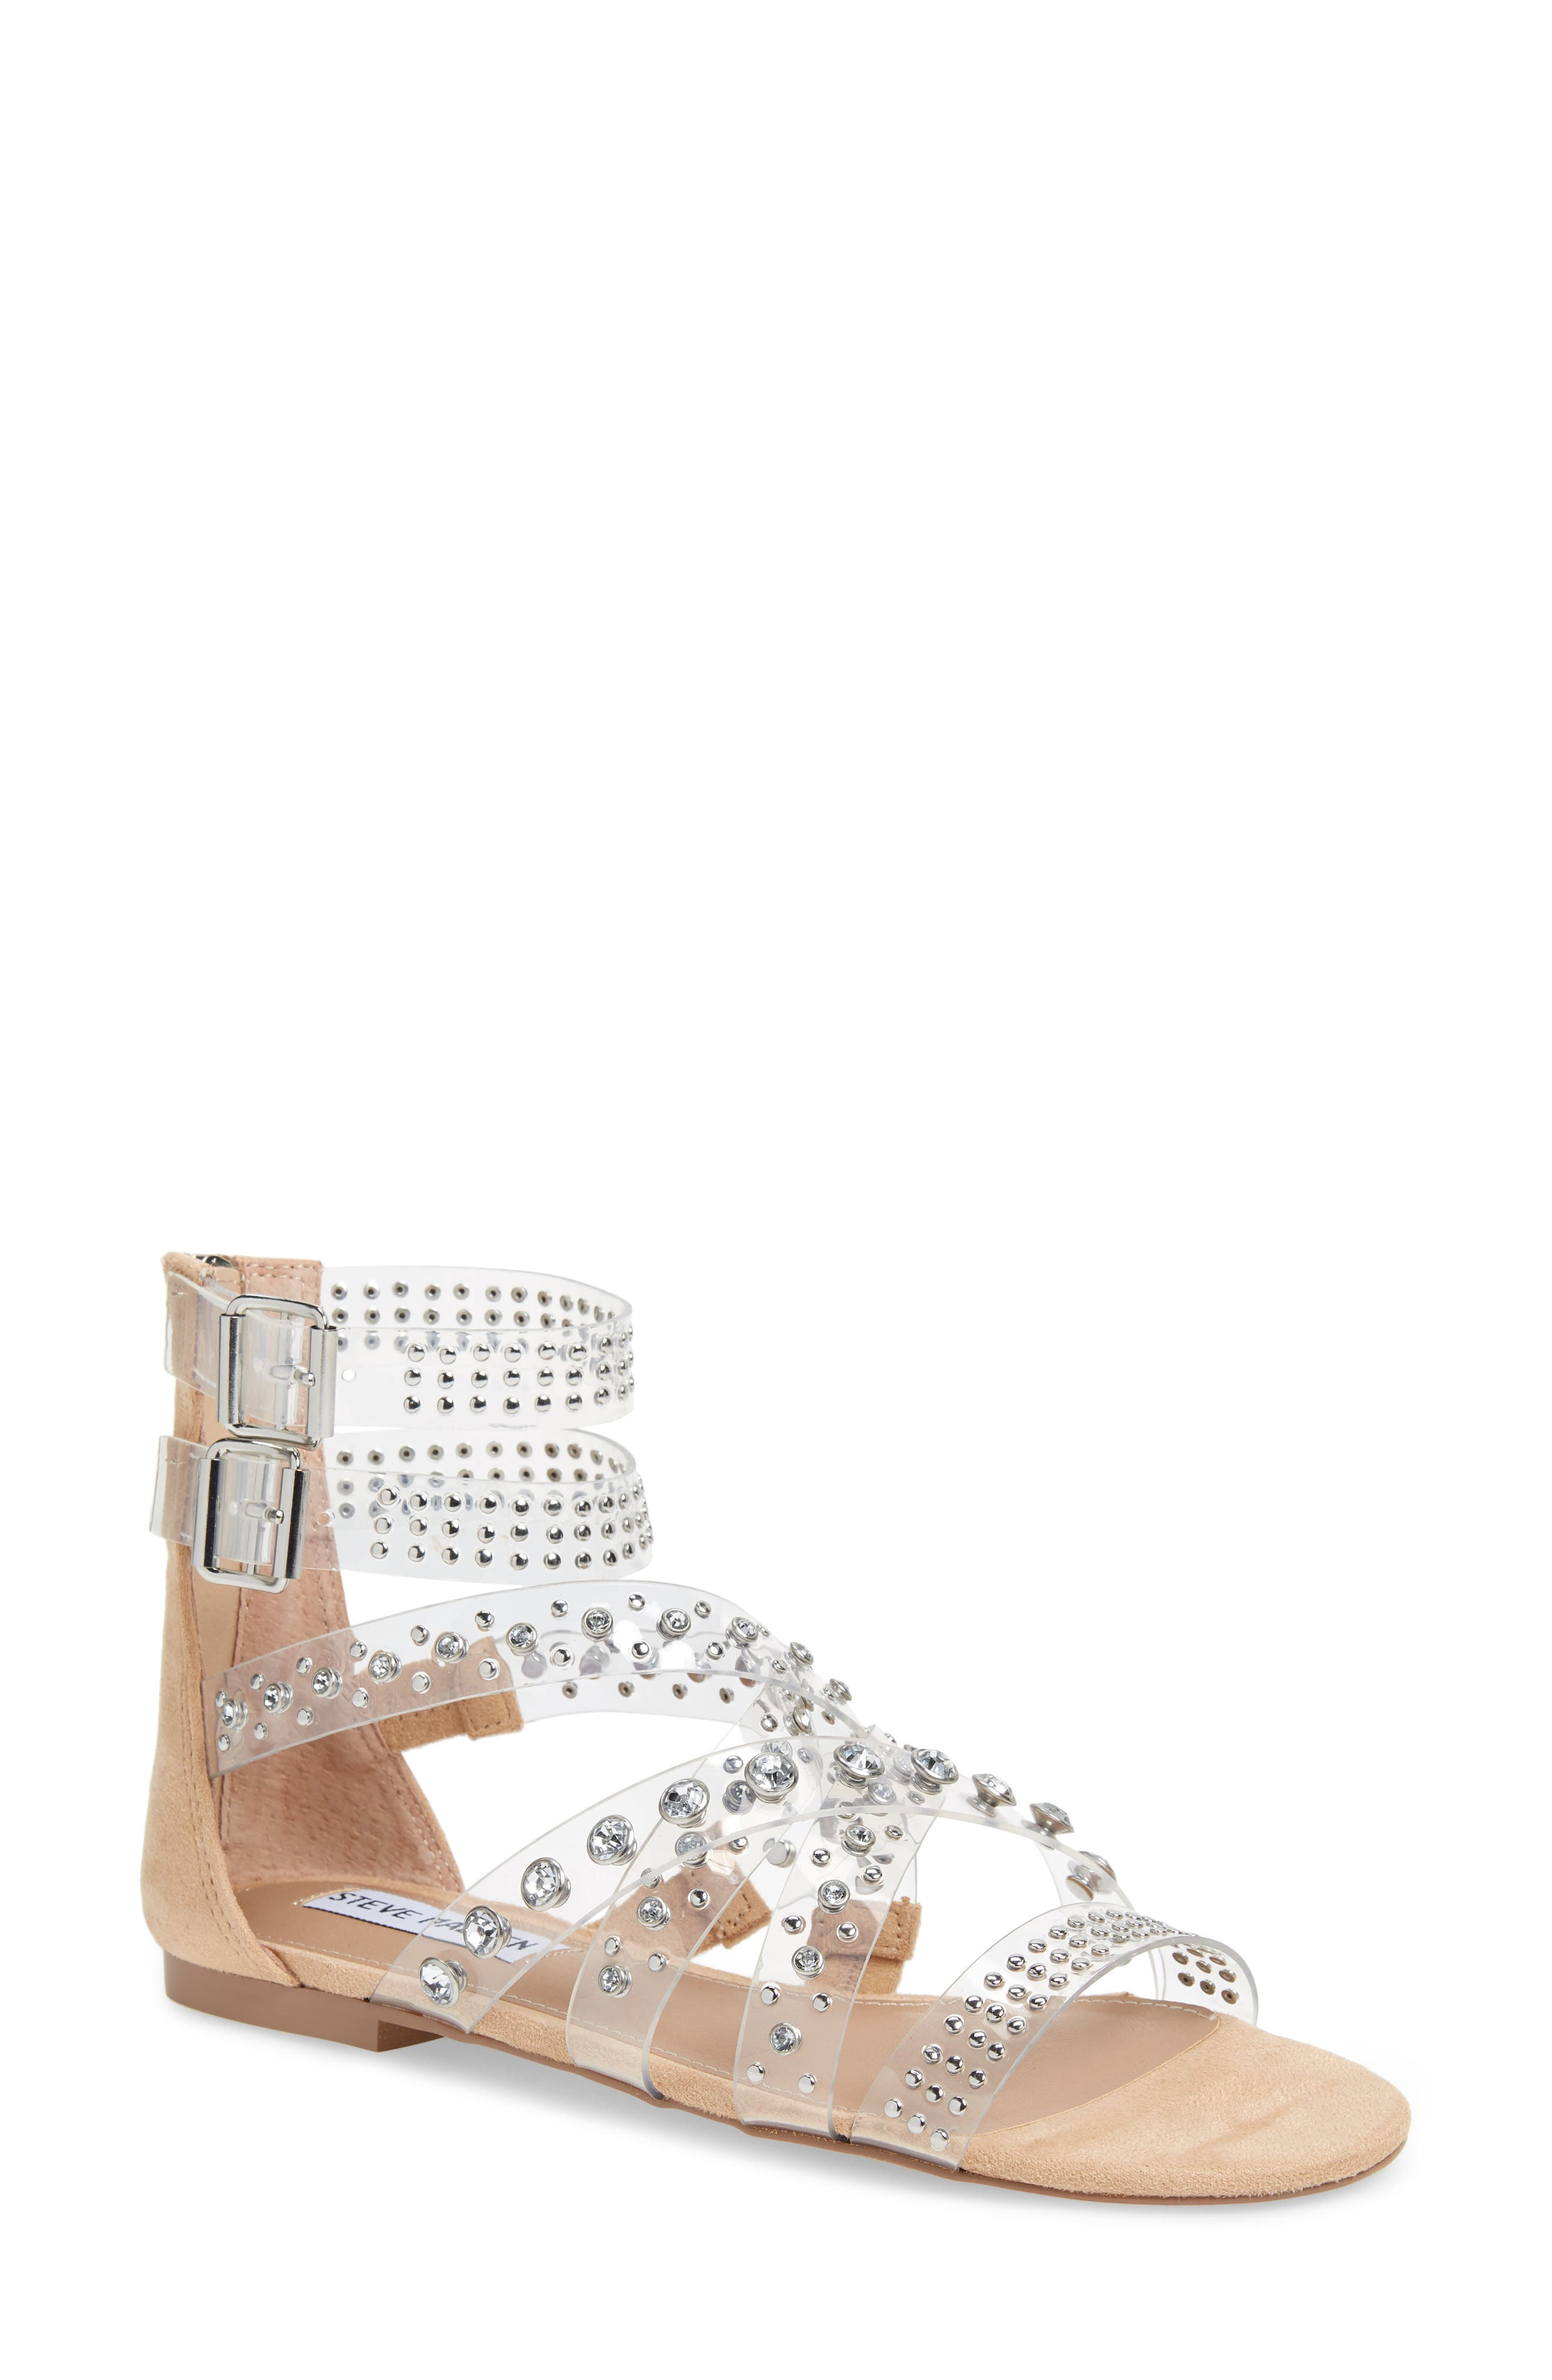 Shift Embellished Gladiator Sandal,                         Main,                         color, Clear